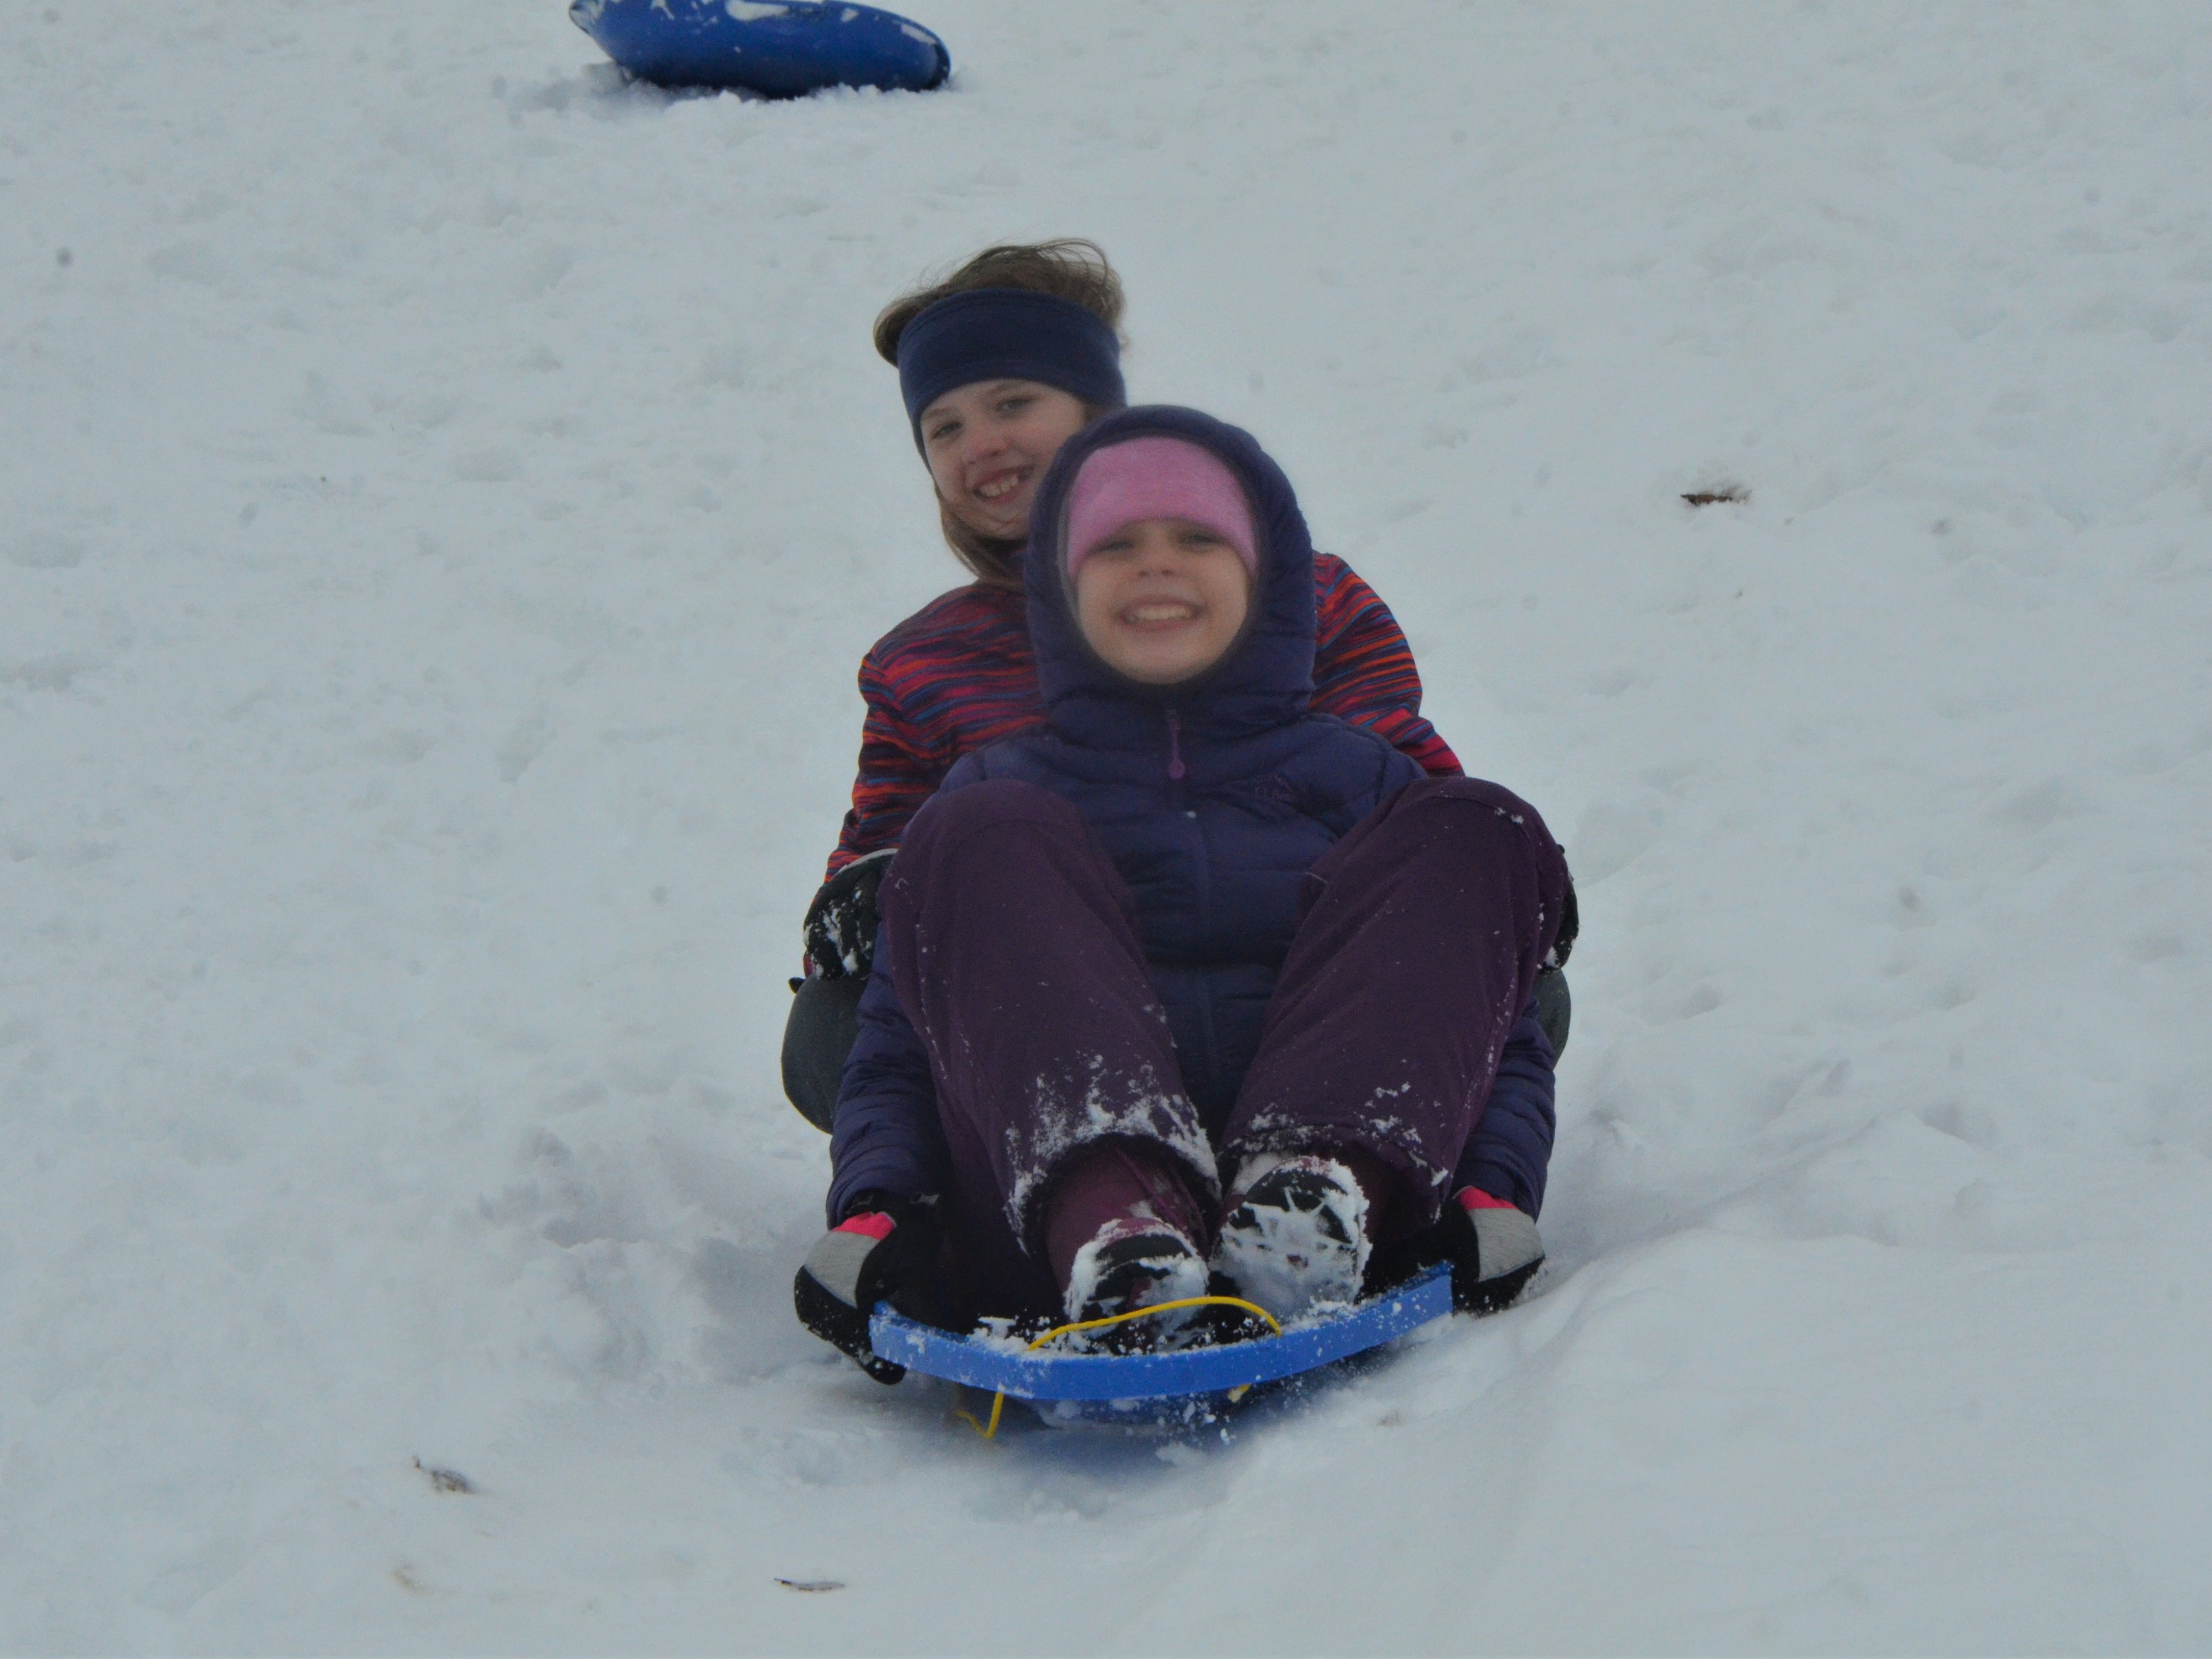 Sisters Alexandria Camburn and Evey Camburn sled down a hill together at Leila Arboretum on Monday, November 26, 2018.